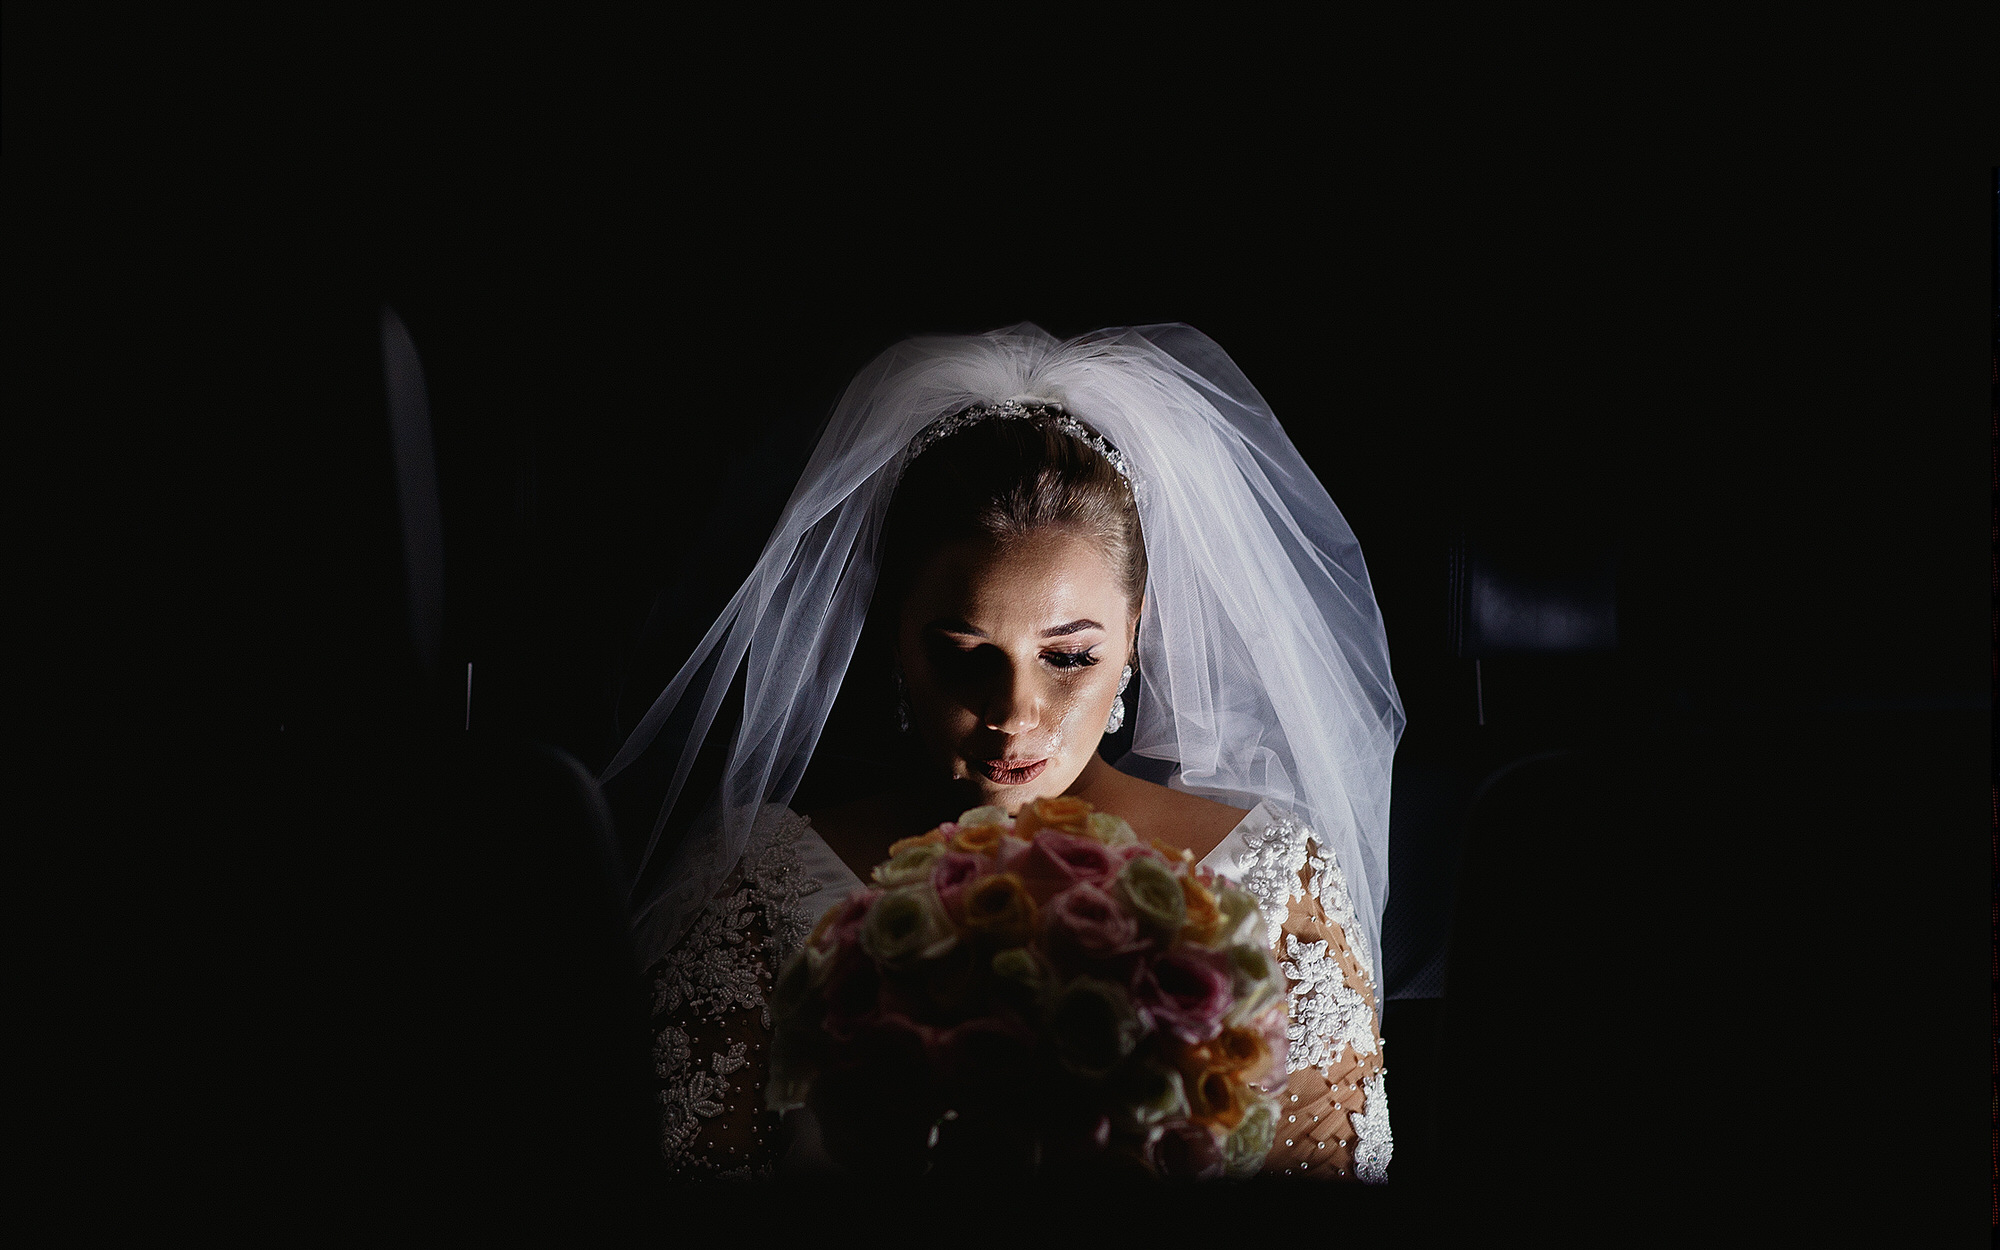 Bride cries in a beautiful and touching wedding photography